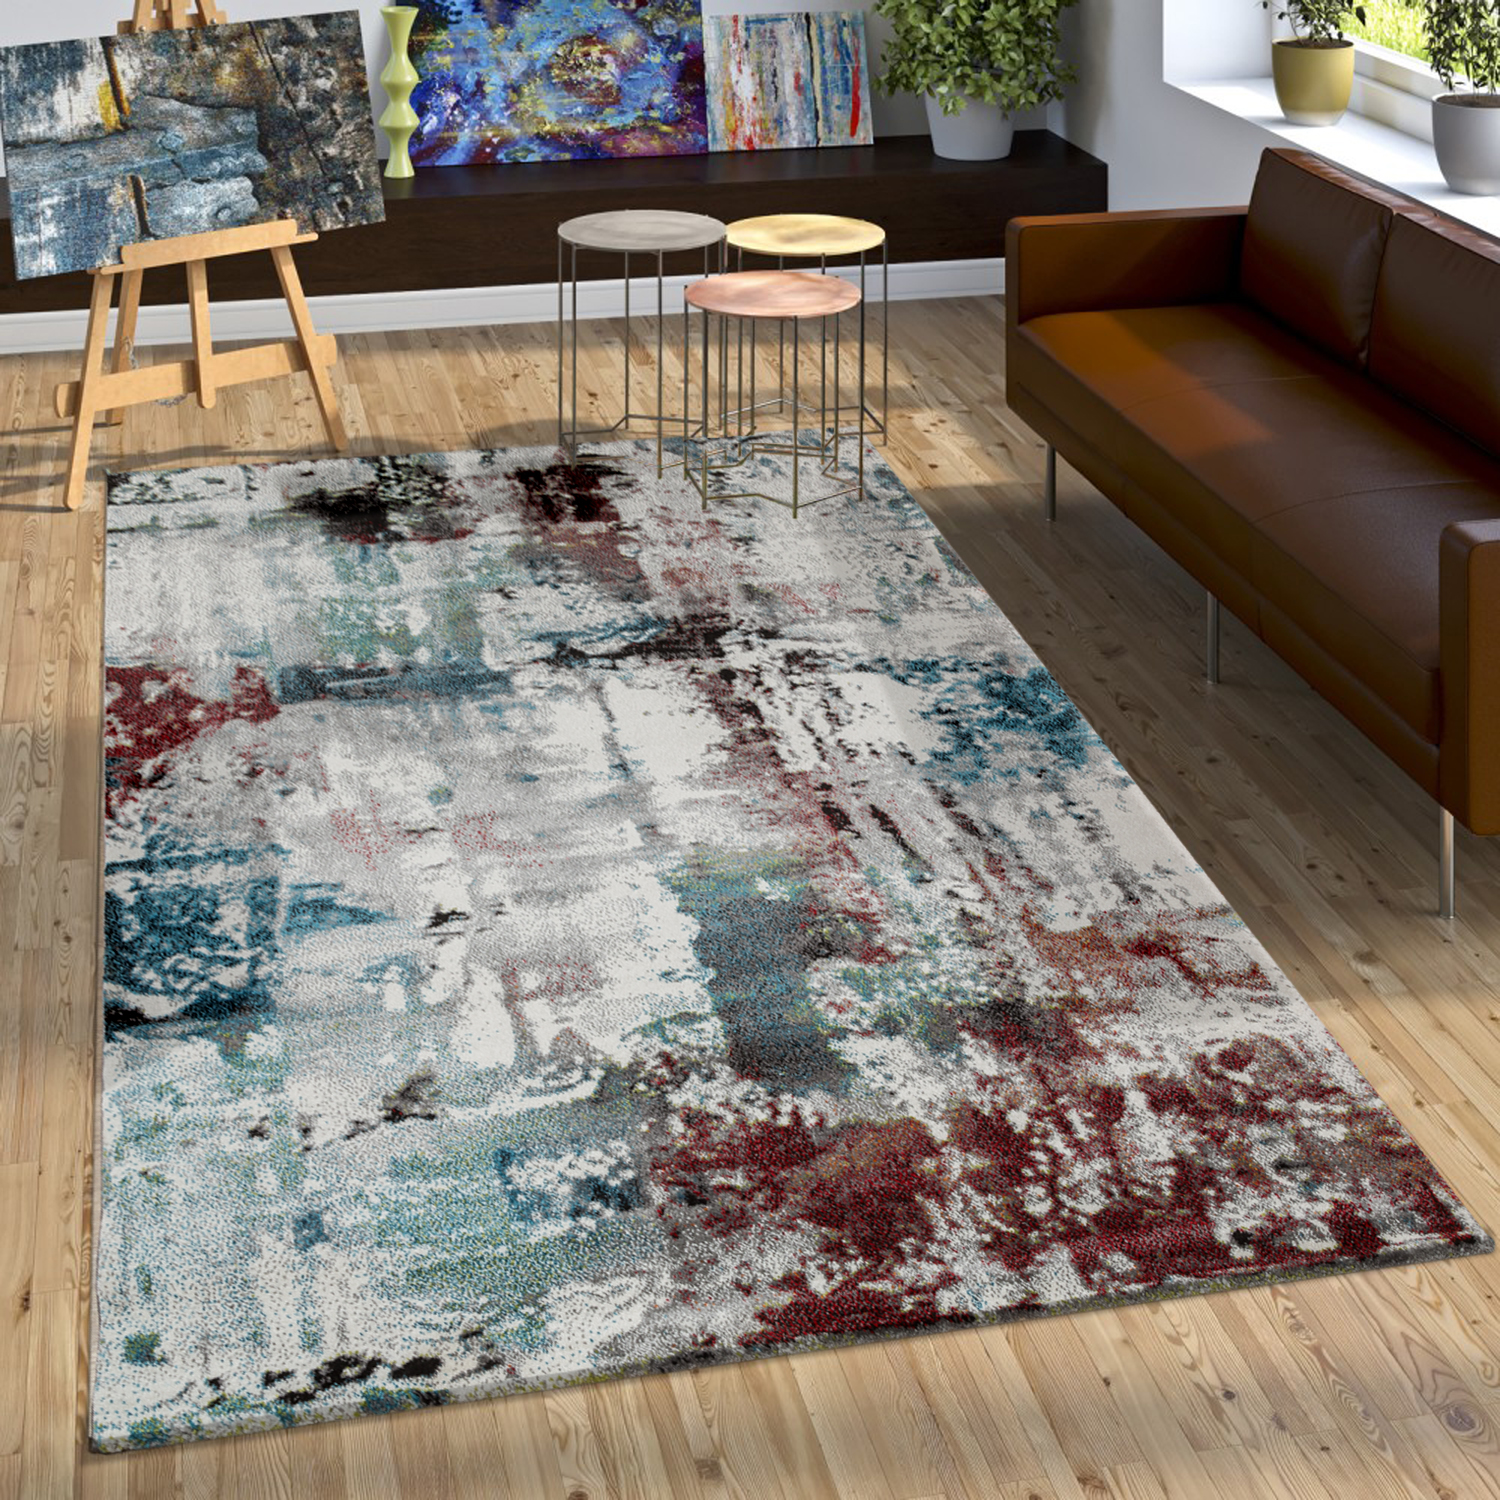 Designer Rug Modern Canvas Effect Abstract Splash Brushed Turquoise Red Cream